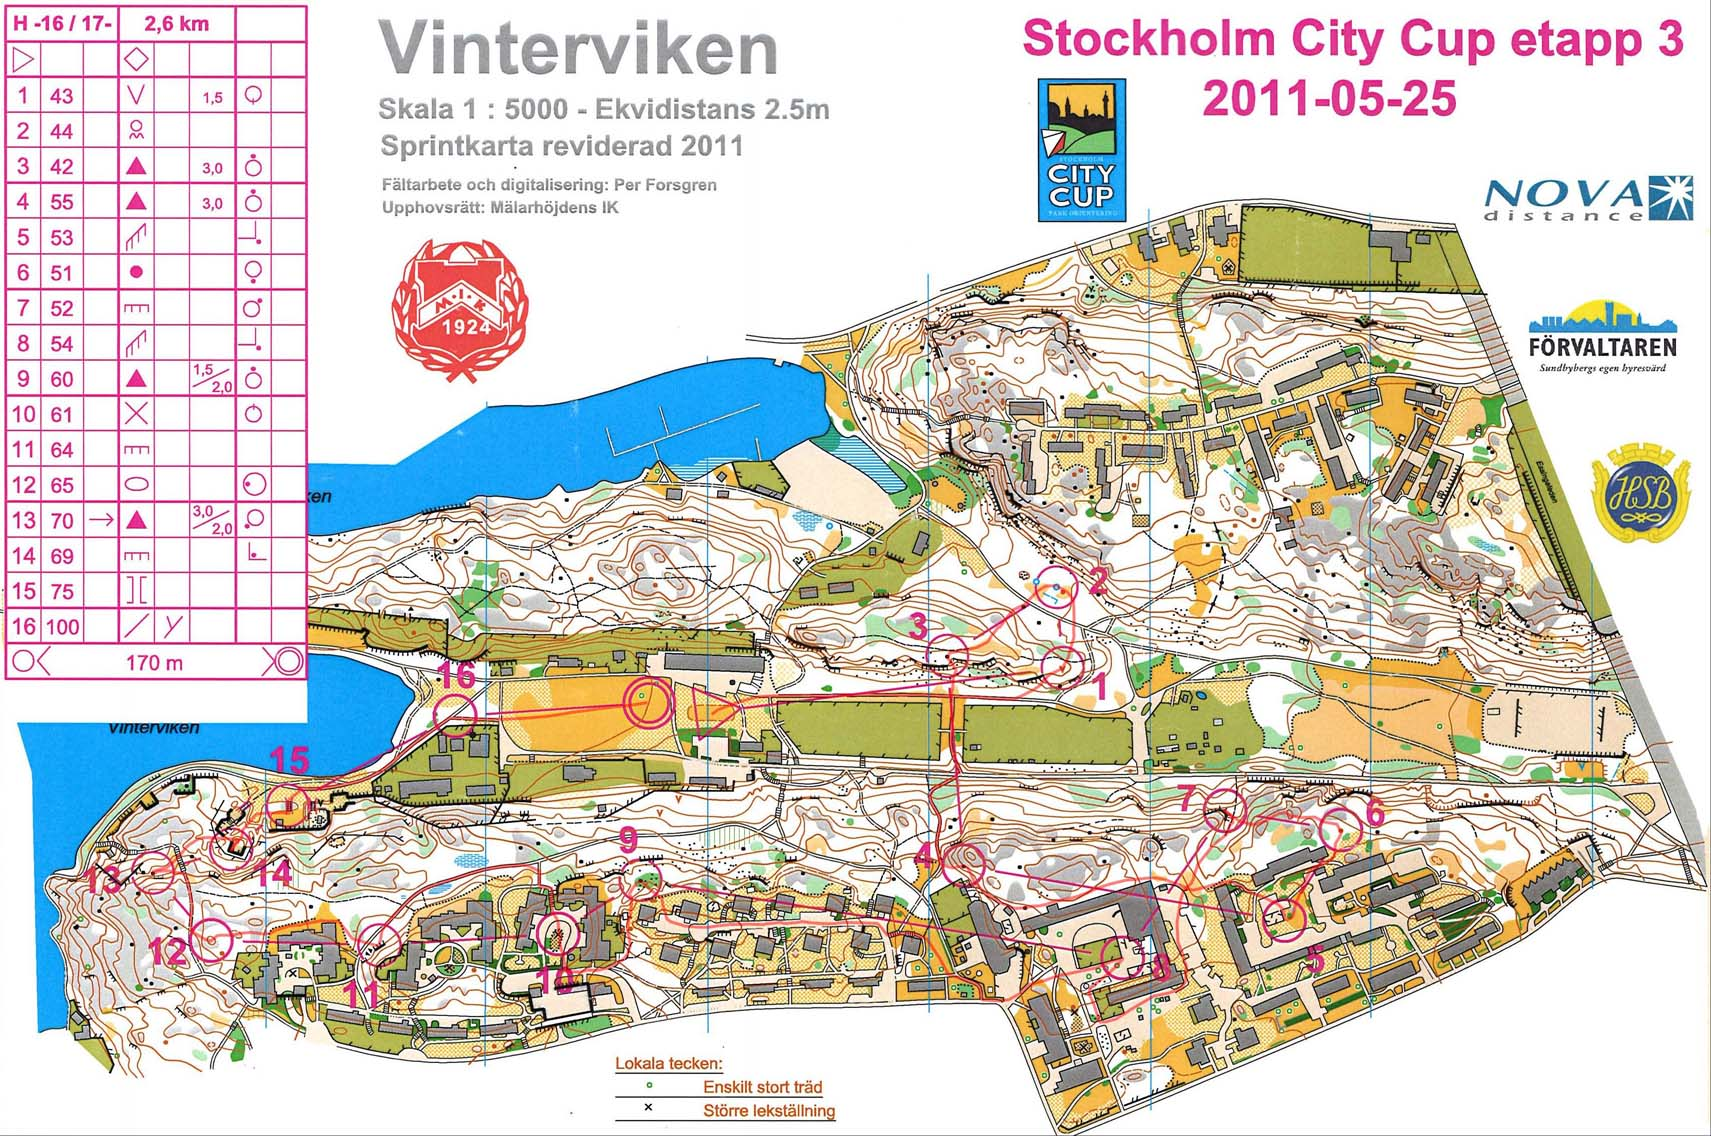 Stockholm City Cup 3 (25/05/2011)